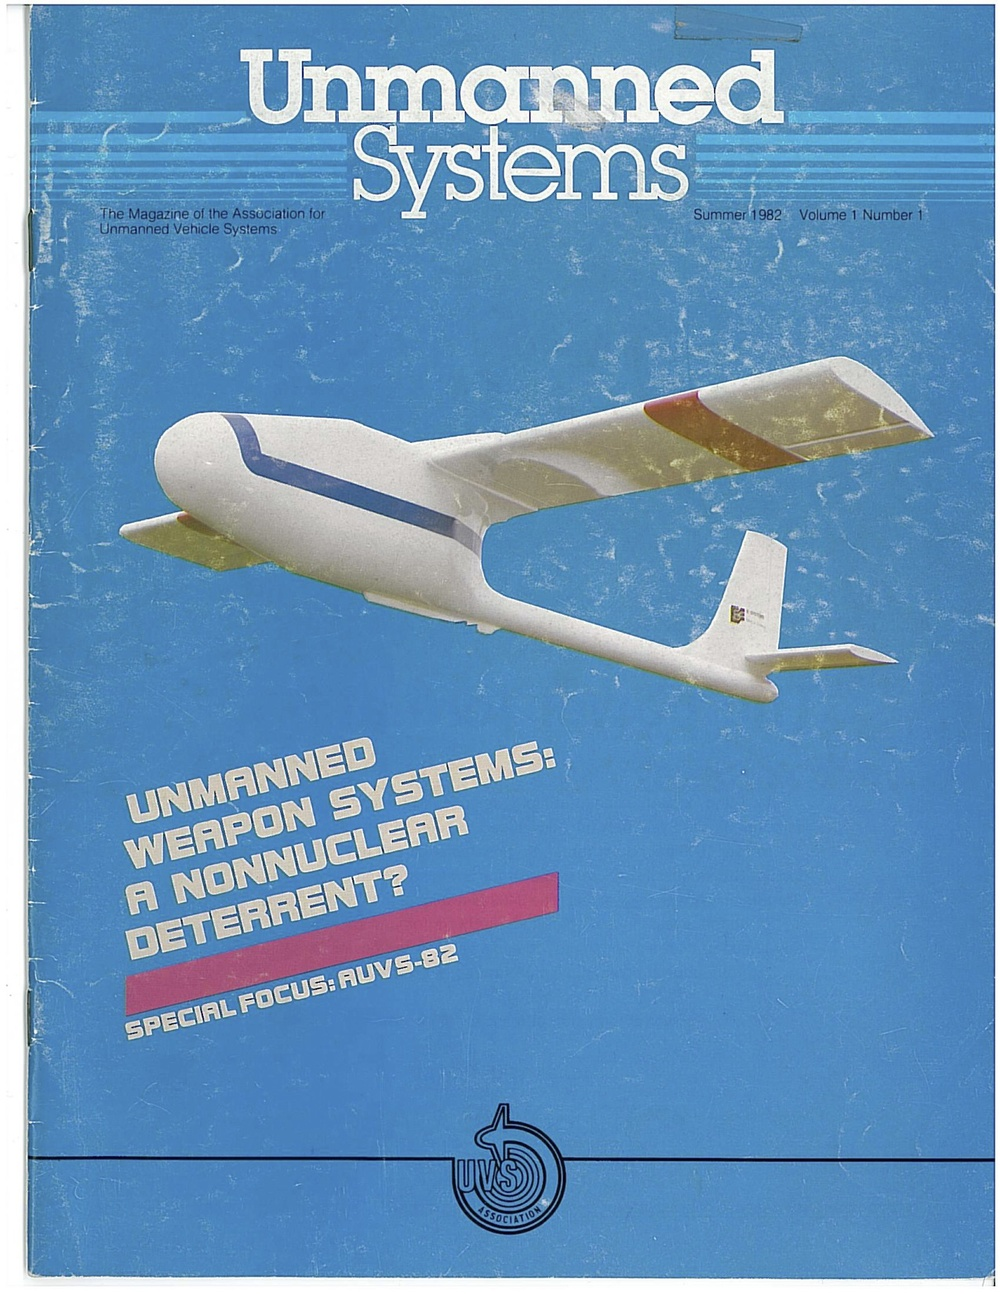 First_Issue_Unmanned_Systems_Magazine_iPad.jpg